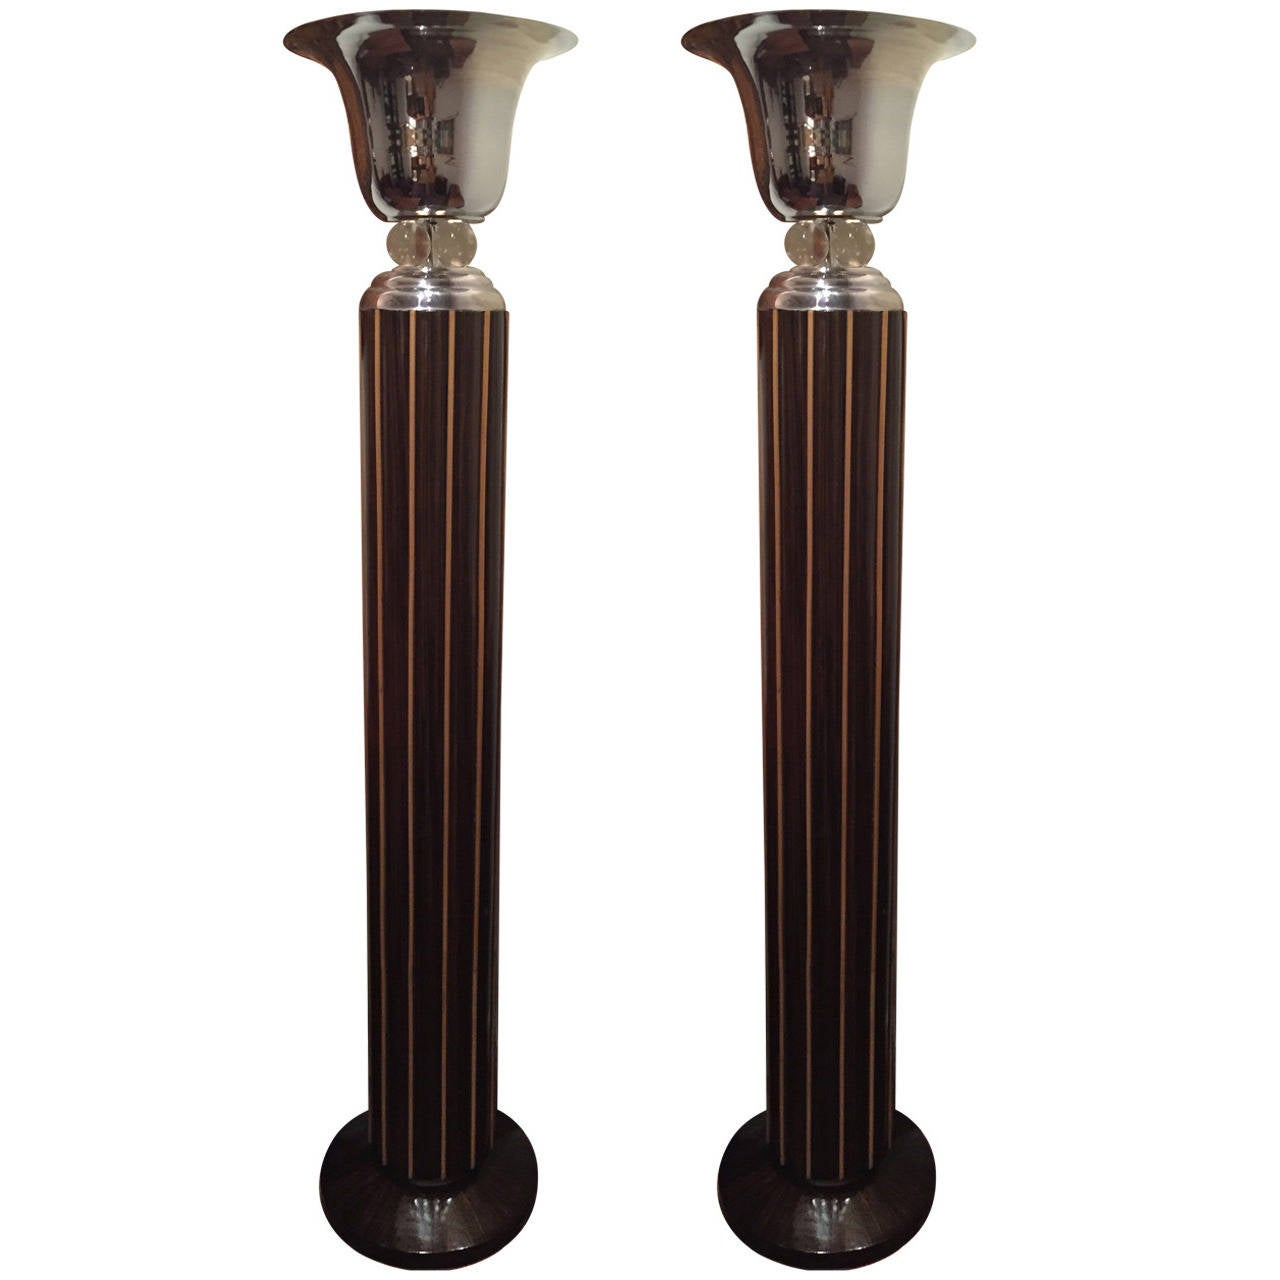 Spectacular Art Deco Floor Lamps in Two-Tone Wood